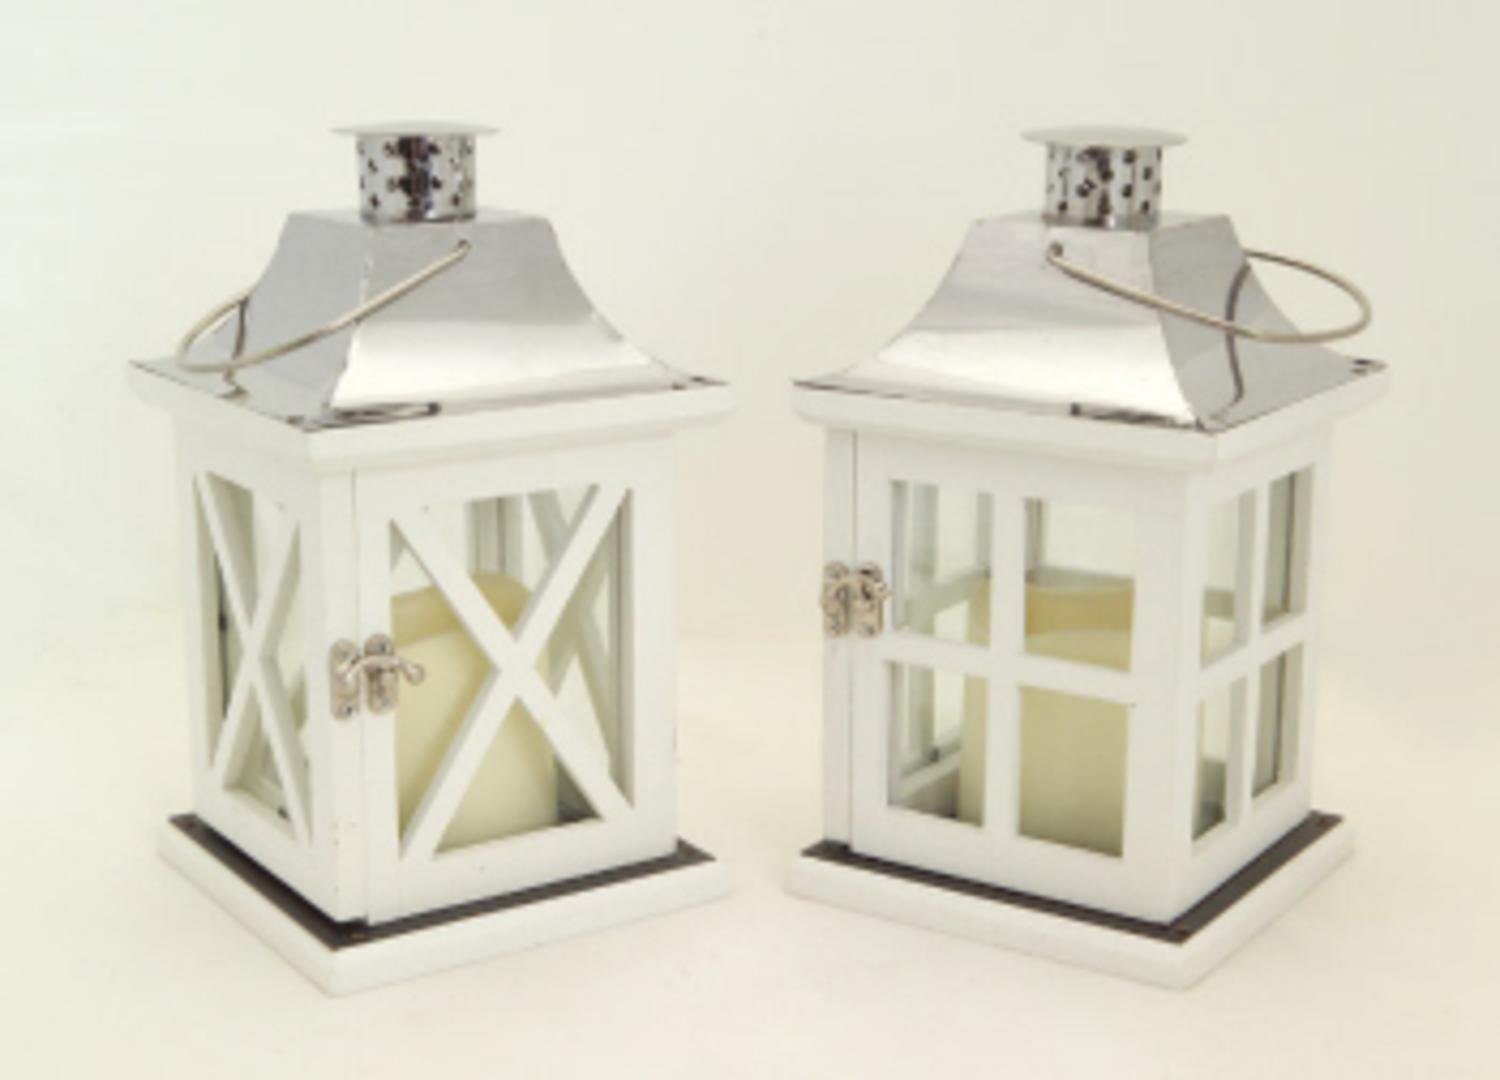 ... Pack Of 4 White And Silver Battery Operated Outdoor LED Candle Lanterns  W/ Timers 9